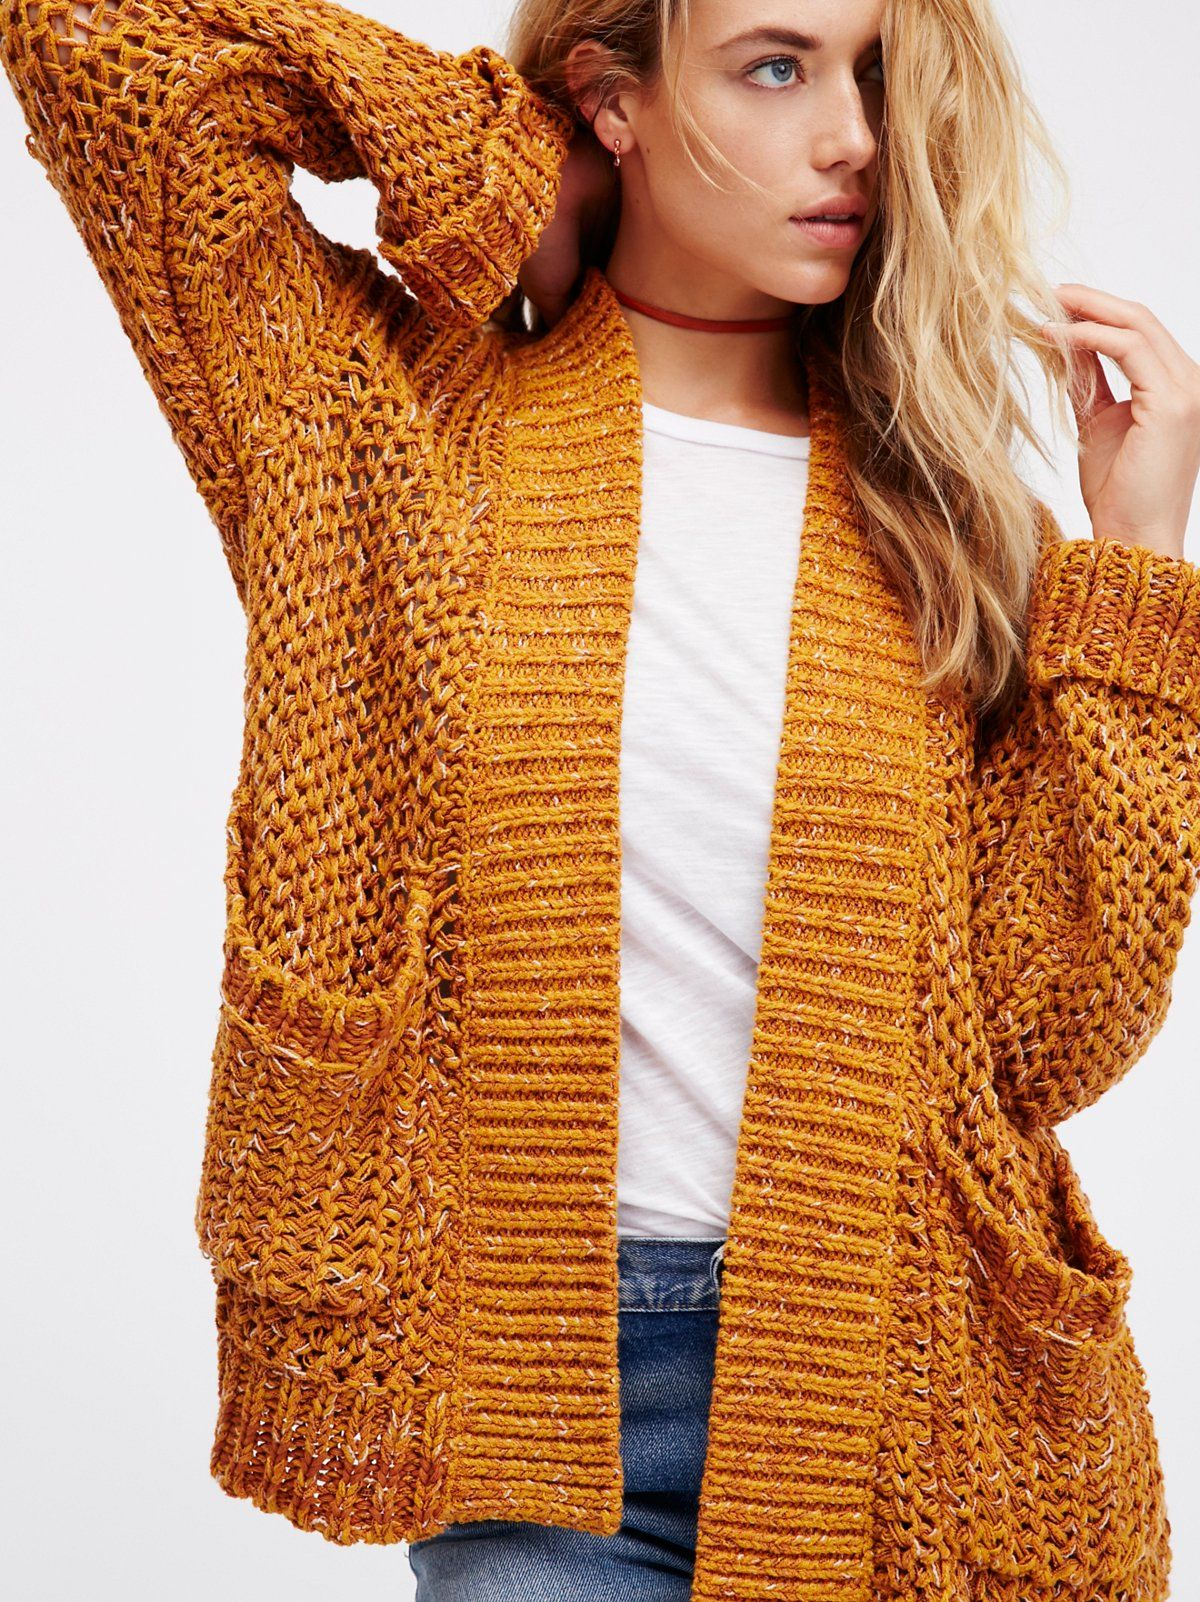 Dupree Cardi | Marled chunky cardigan sweater featuring front slip ...